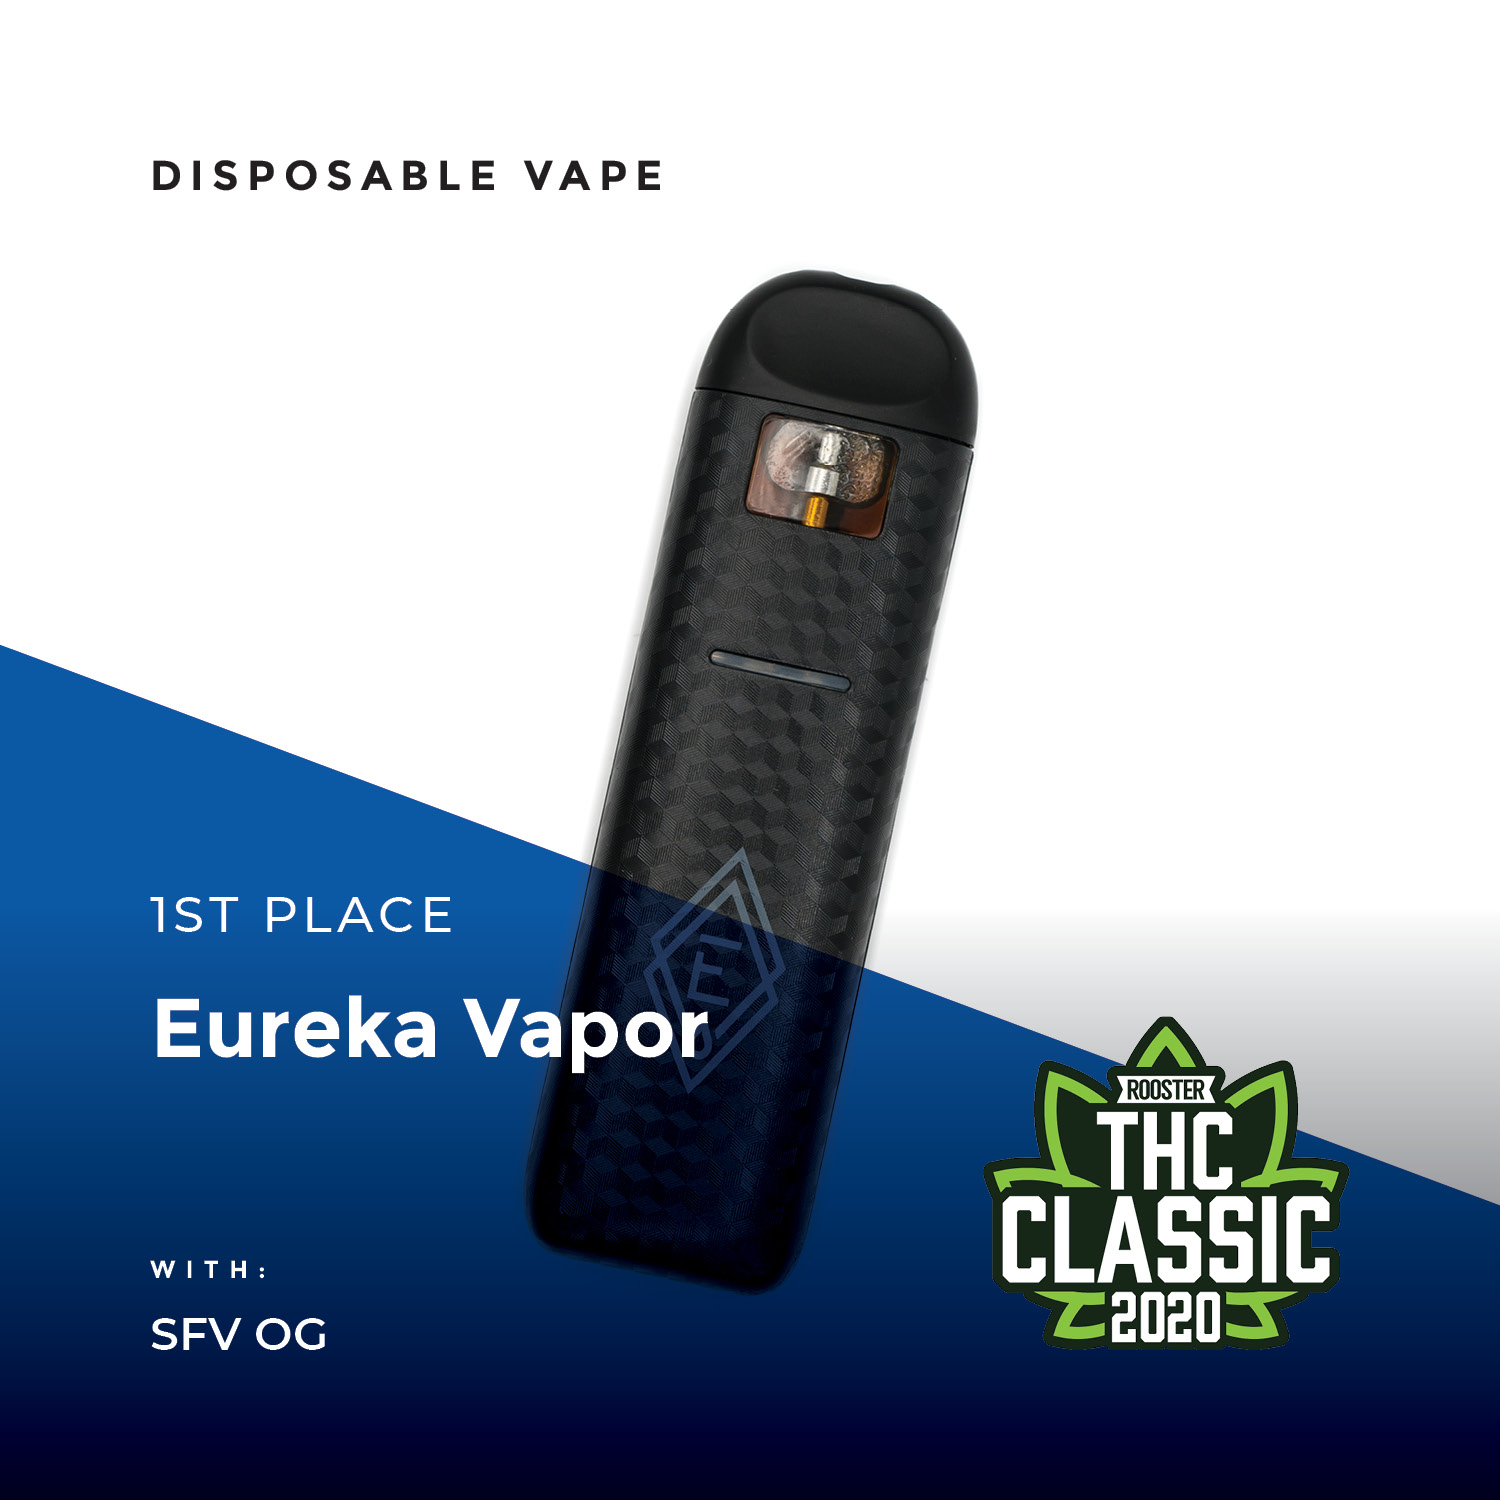 Best Colorado Cannabis Products: Disposable Vape